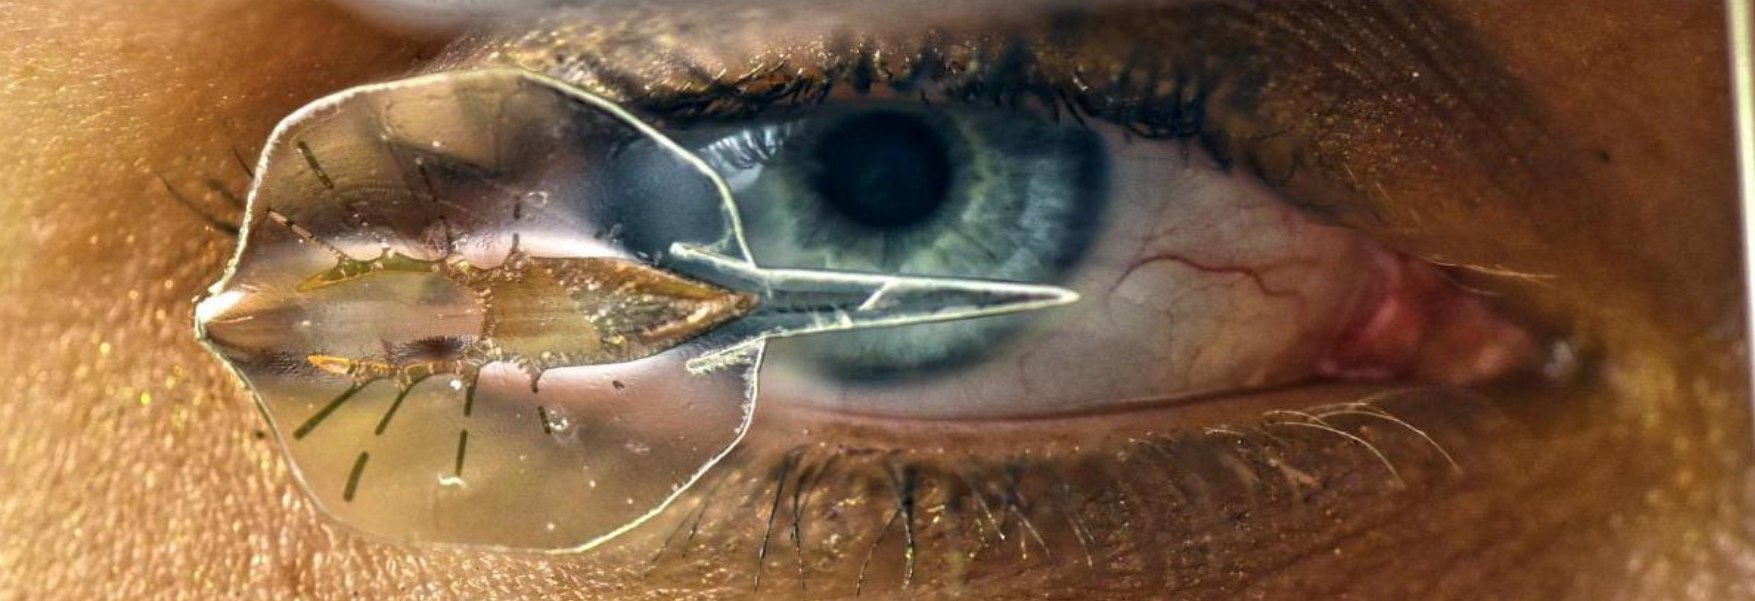 Biohybrid robots, the next step in the robotic revolution   OpenMind